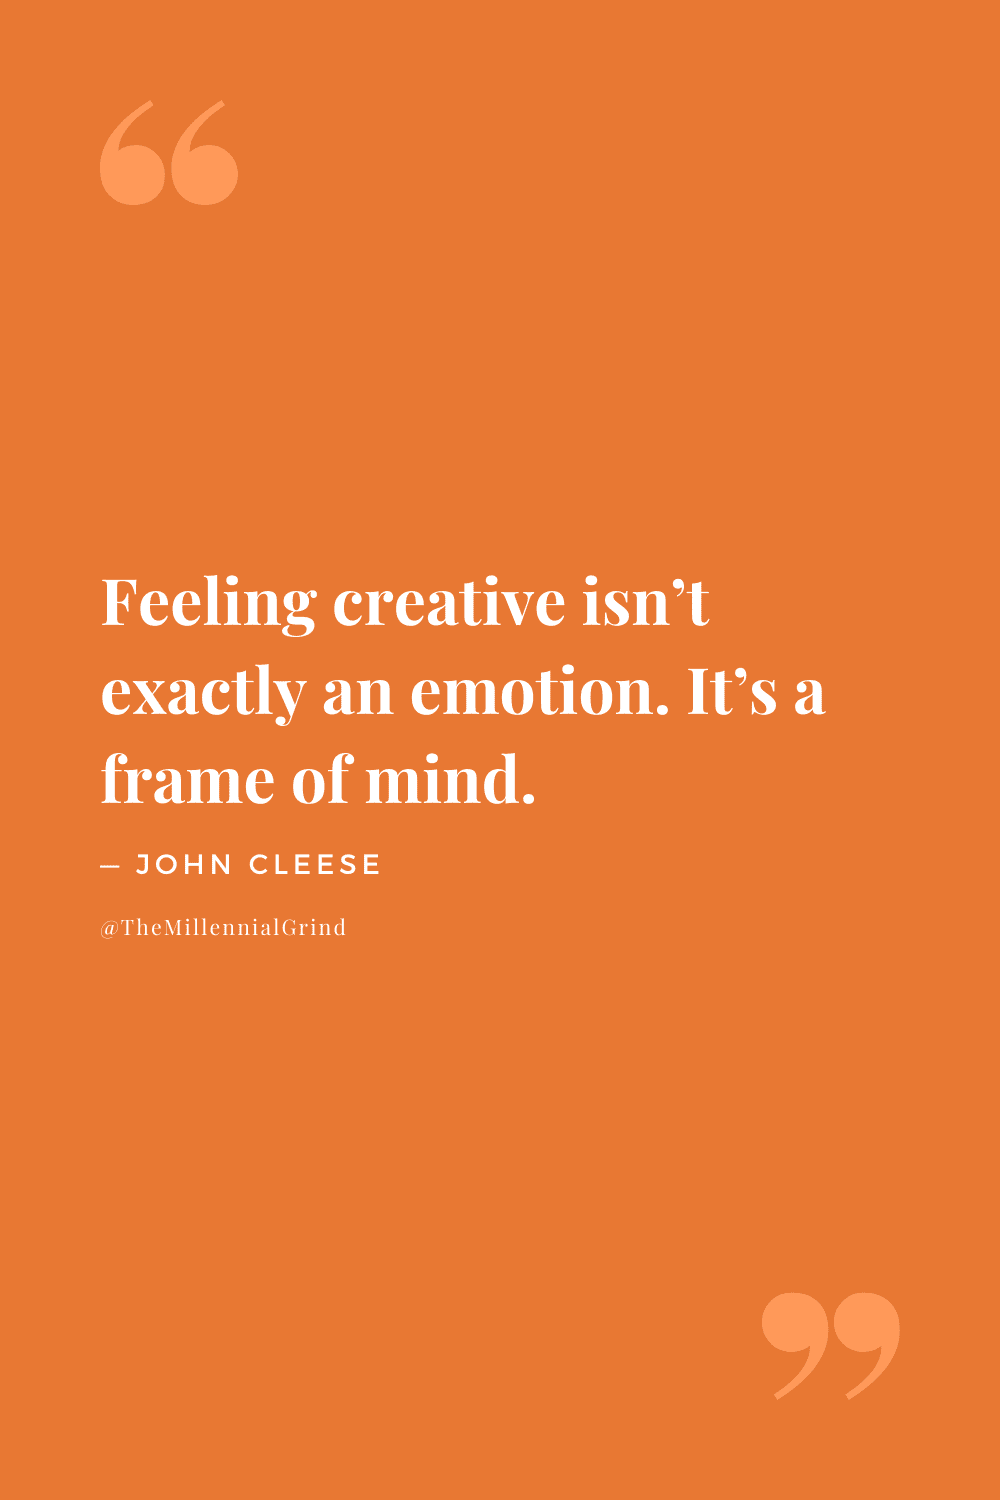 Quotes From Creativity by John Cleese